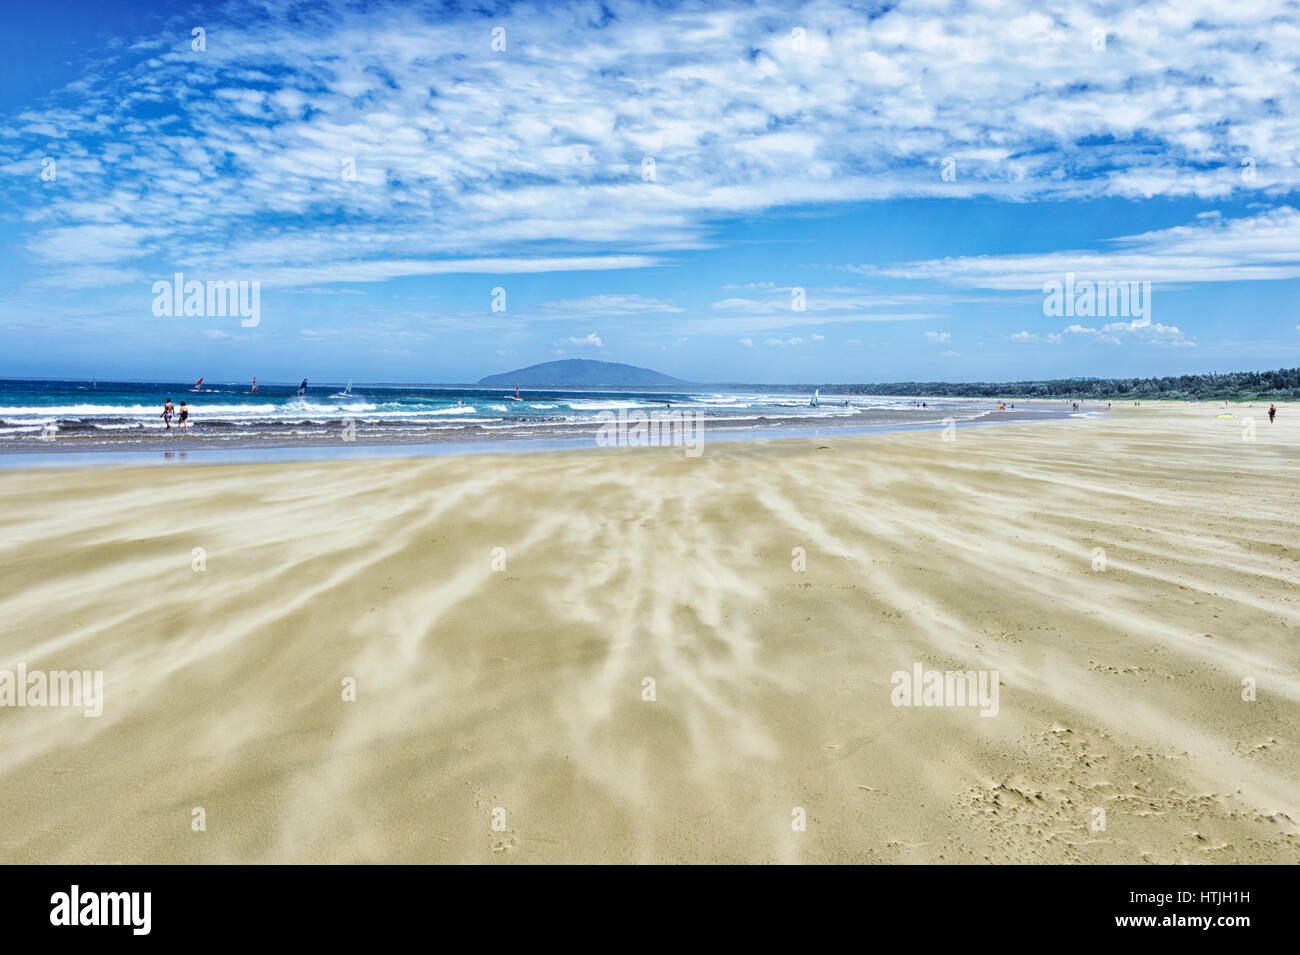 Sand being blown by the wind on Seven Mile Beach, Gerroa, Illawarra Coast, New South Wales, NSW, Australia - Stock Image